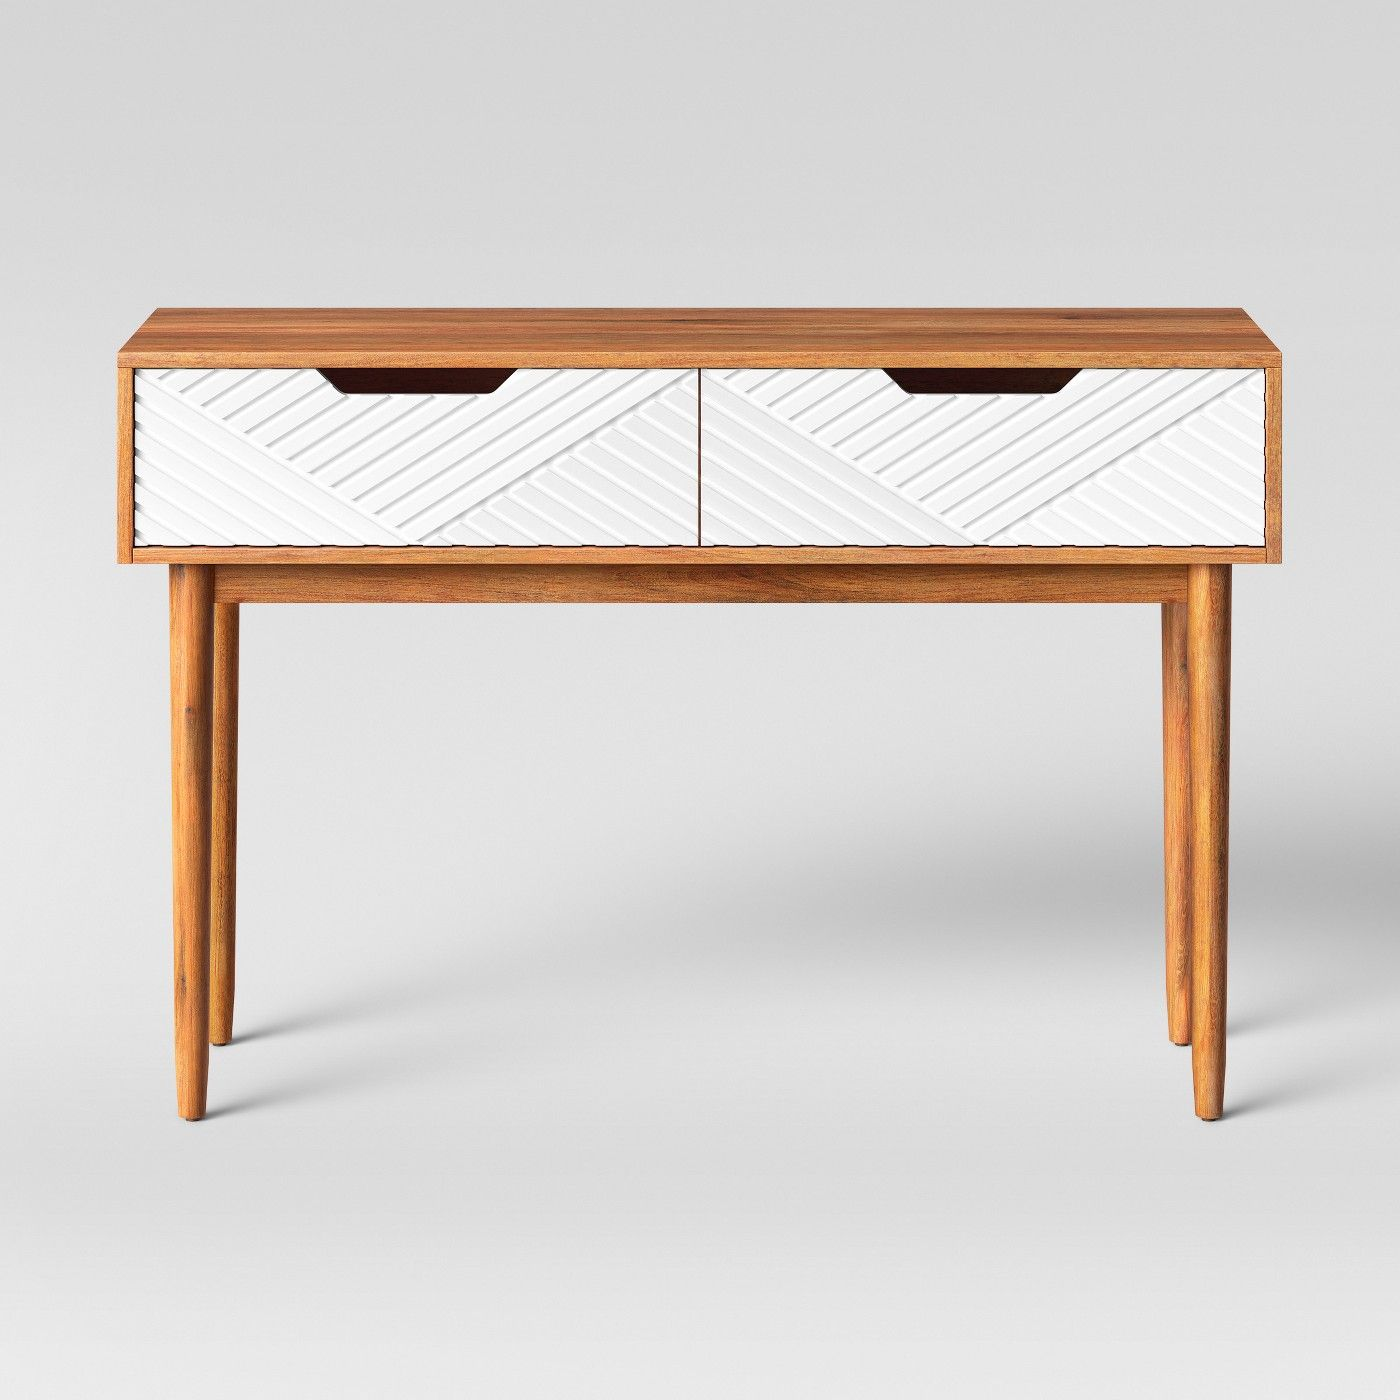 touraco console table brown white opalhouse dream house tachuri geometric front accent target margate dorm essentials modern coffee tables toronto antique blue side low furniture